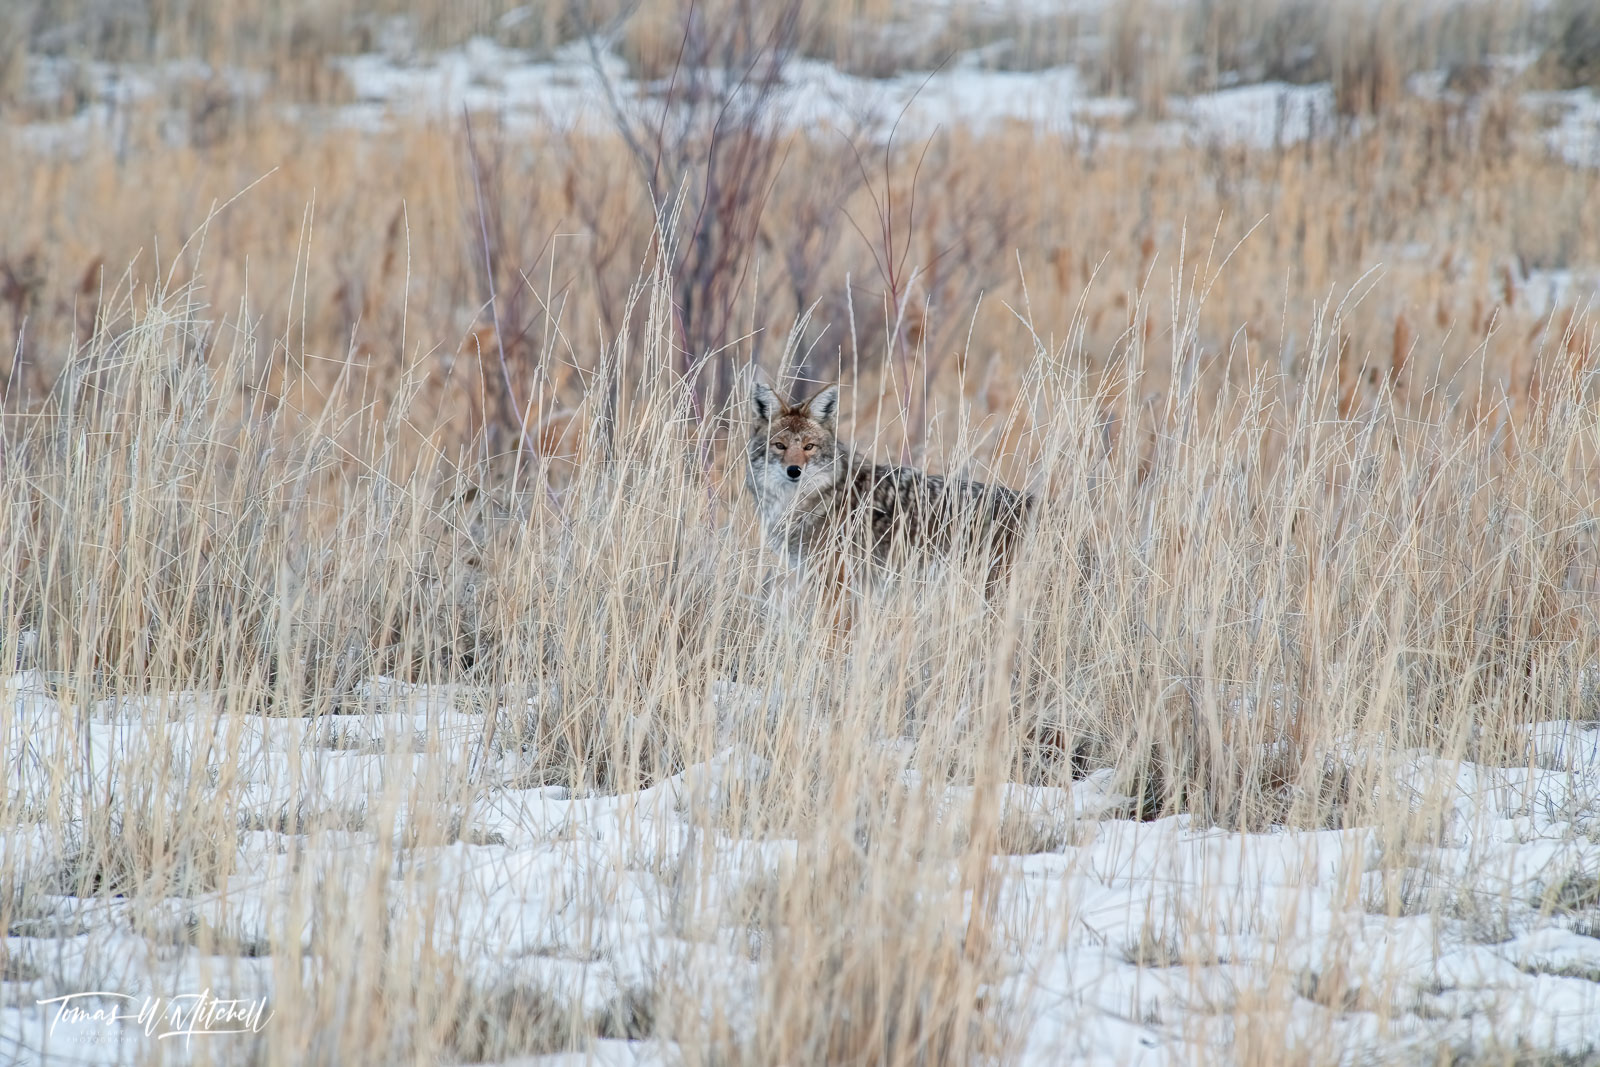 limited edition, fine art, prints, antelope island, utah, coyote, wildlife, weeds, photograph, abstract,, photo